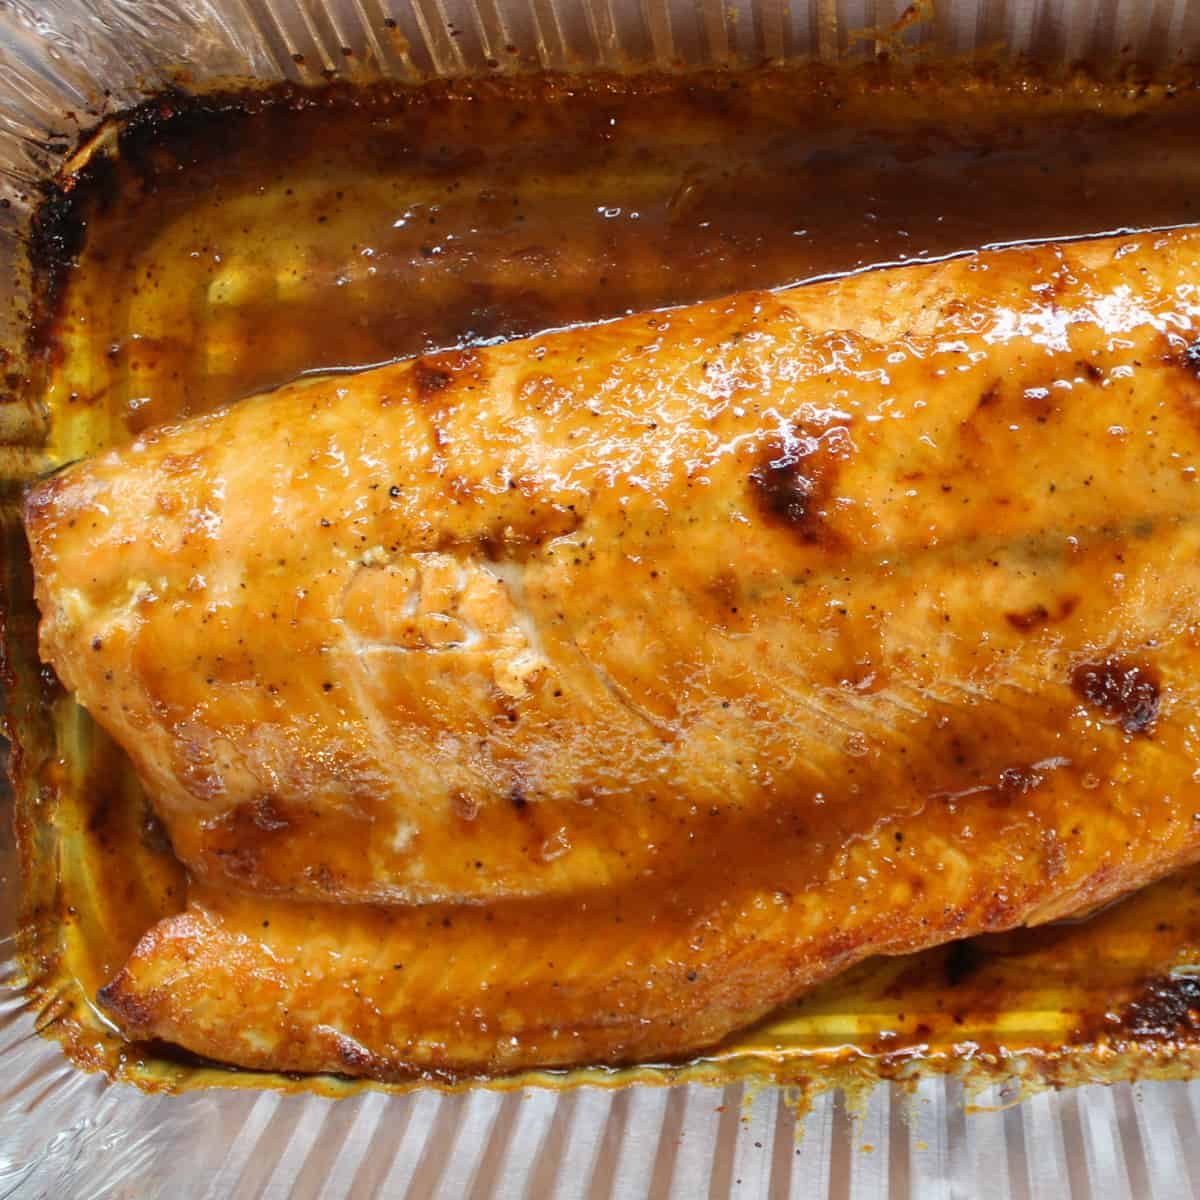 salmon after broiling